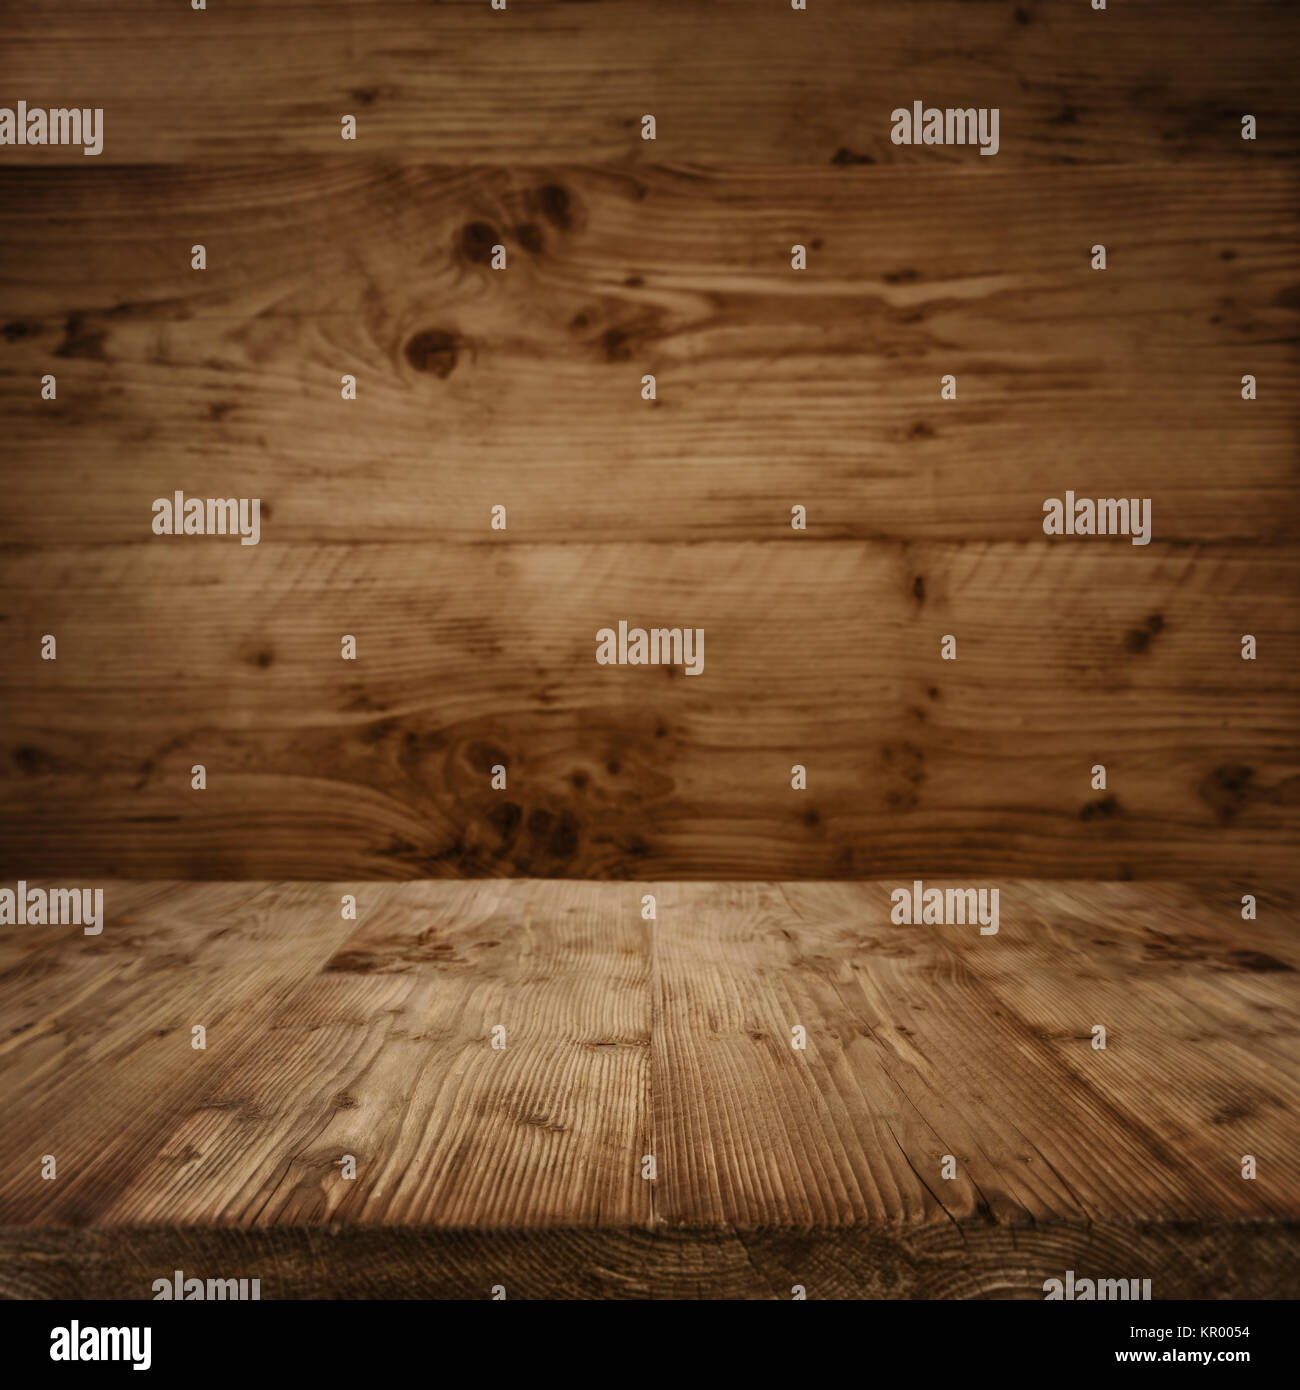 interior with a wooden floor in vintage style - Stock Image